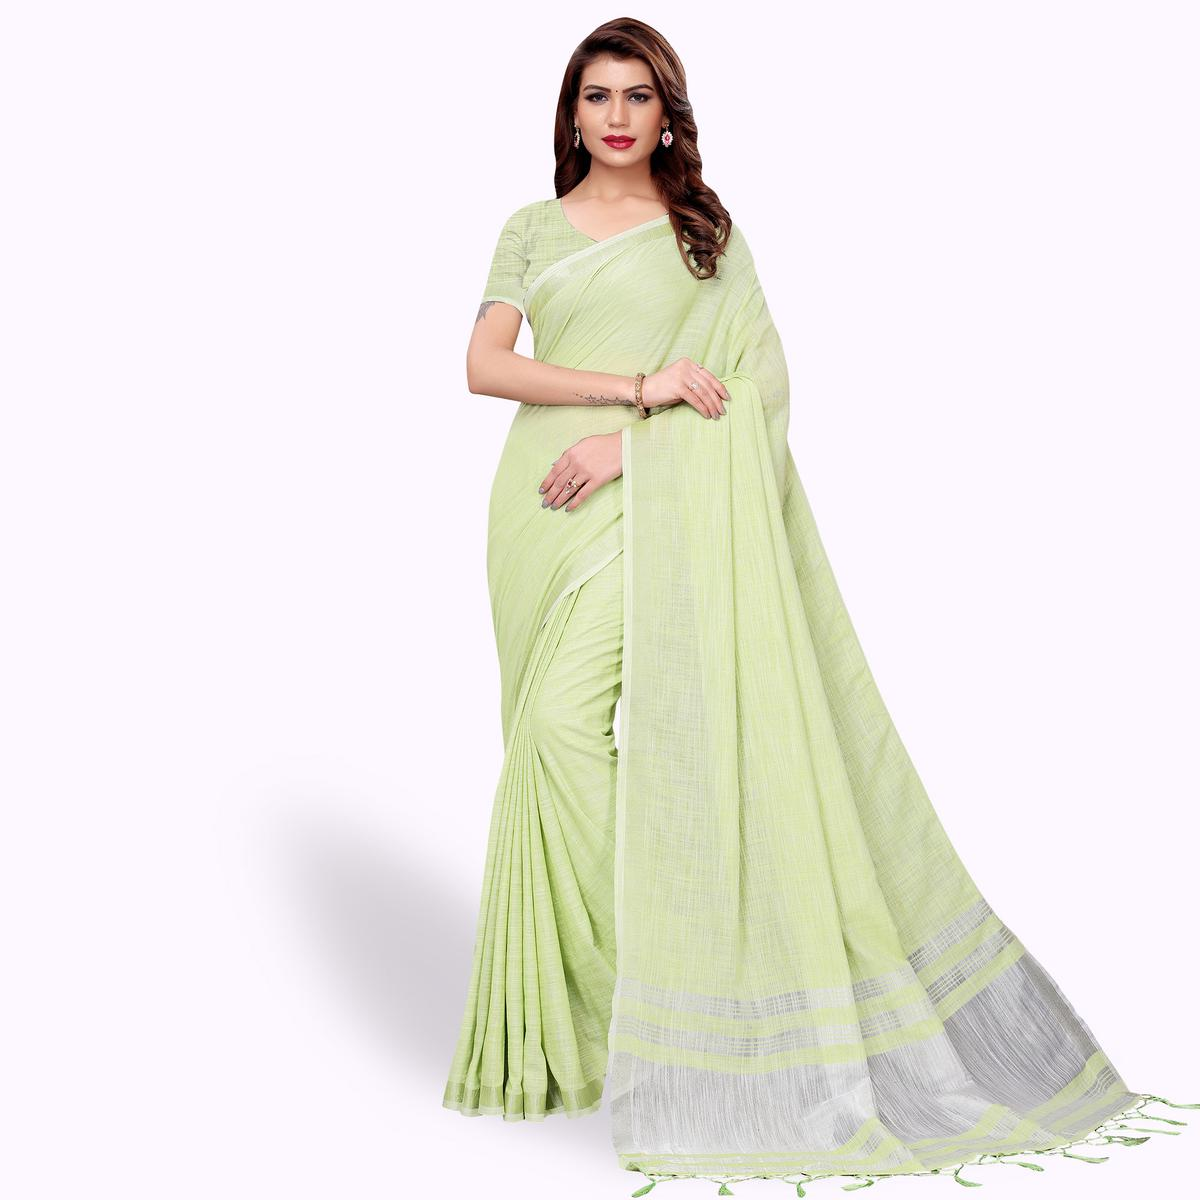 Energetic Pastel Green Colored Festive Wear Cotton Linen Saree